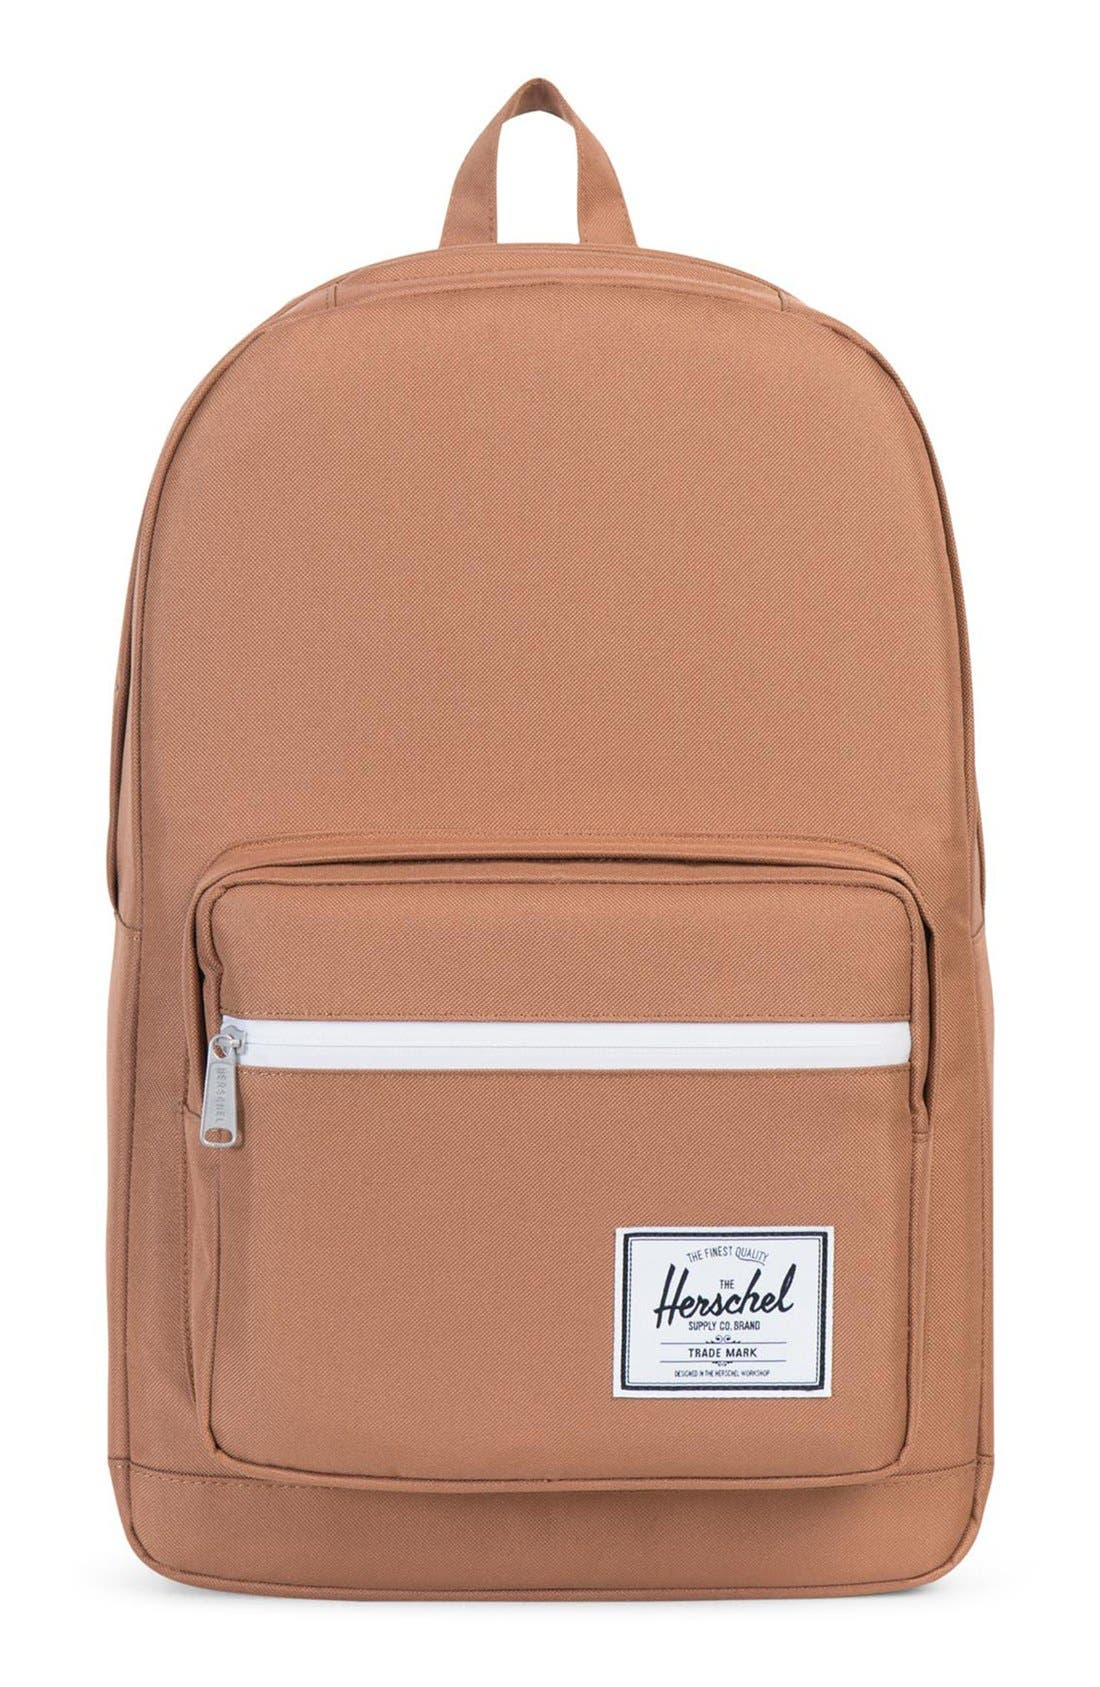 'Pop Quiz' Backpack,                         Main,                         color, 250